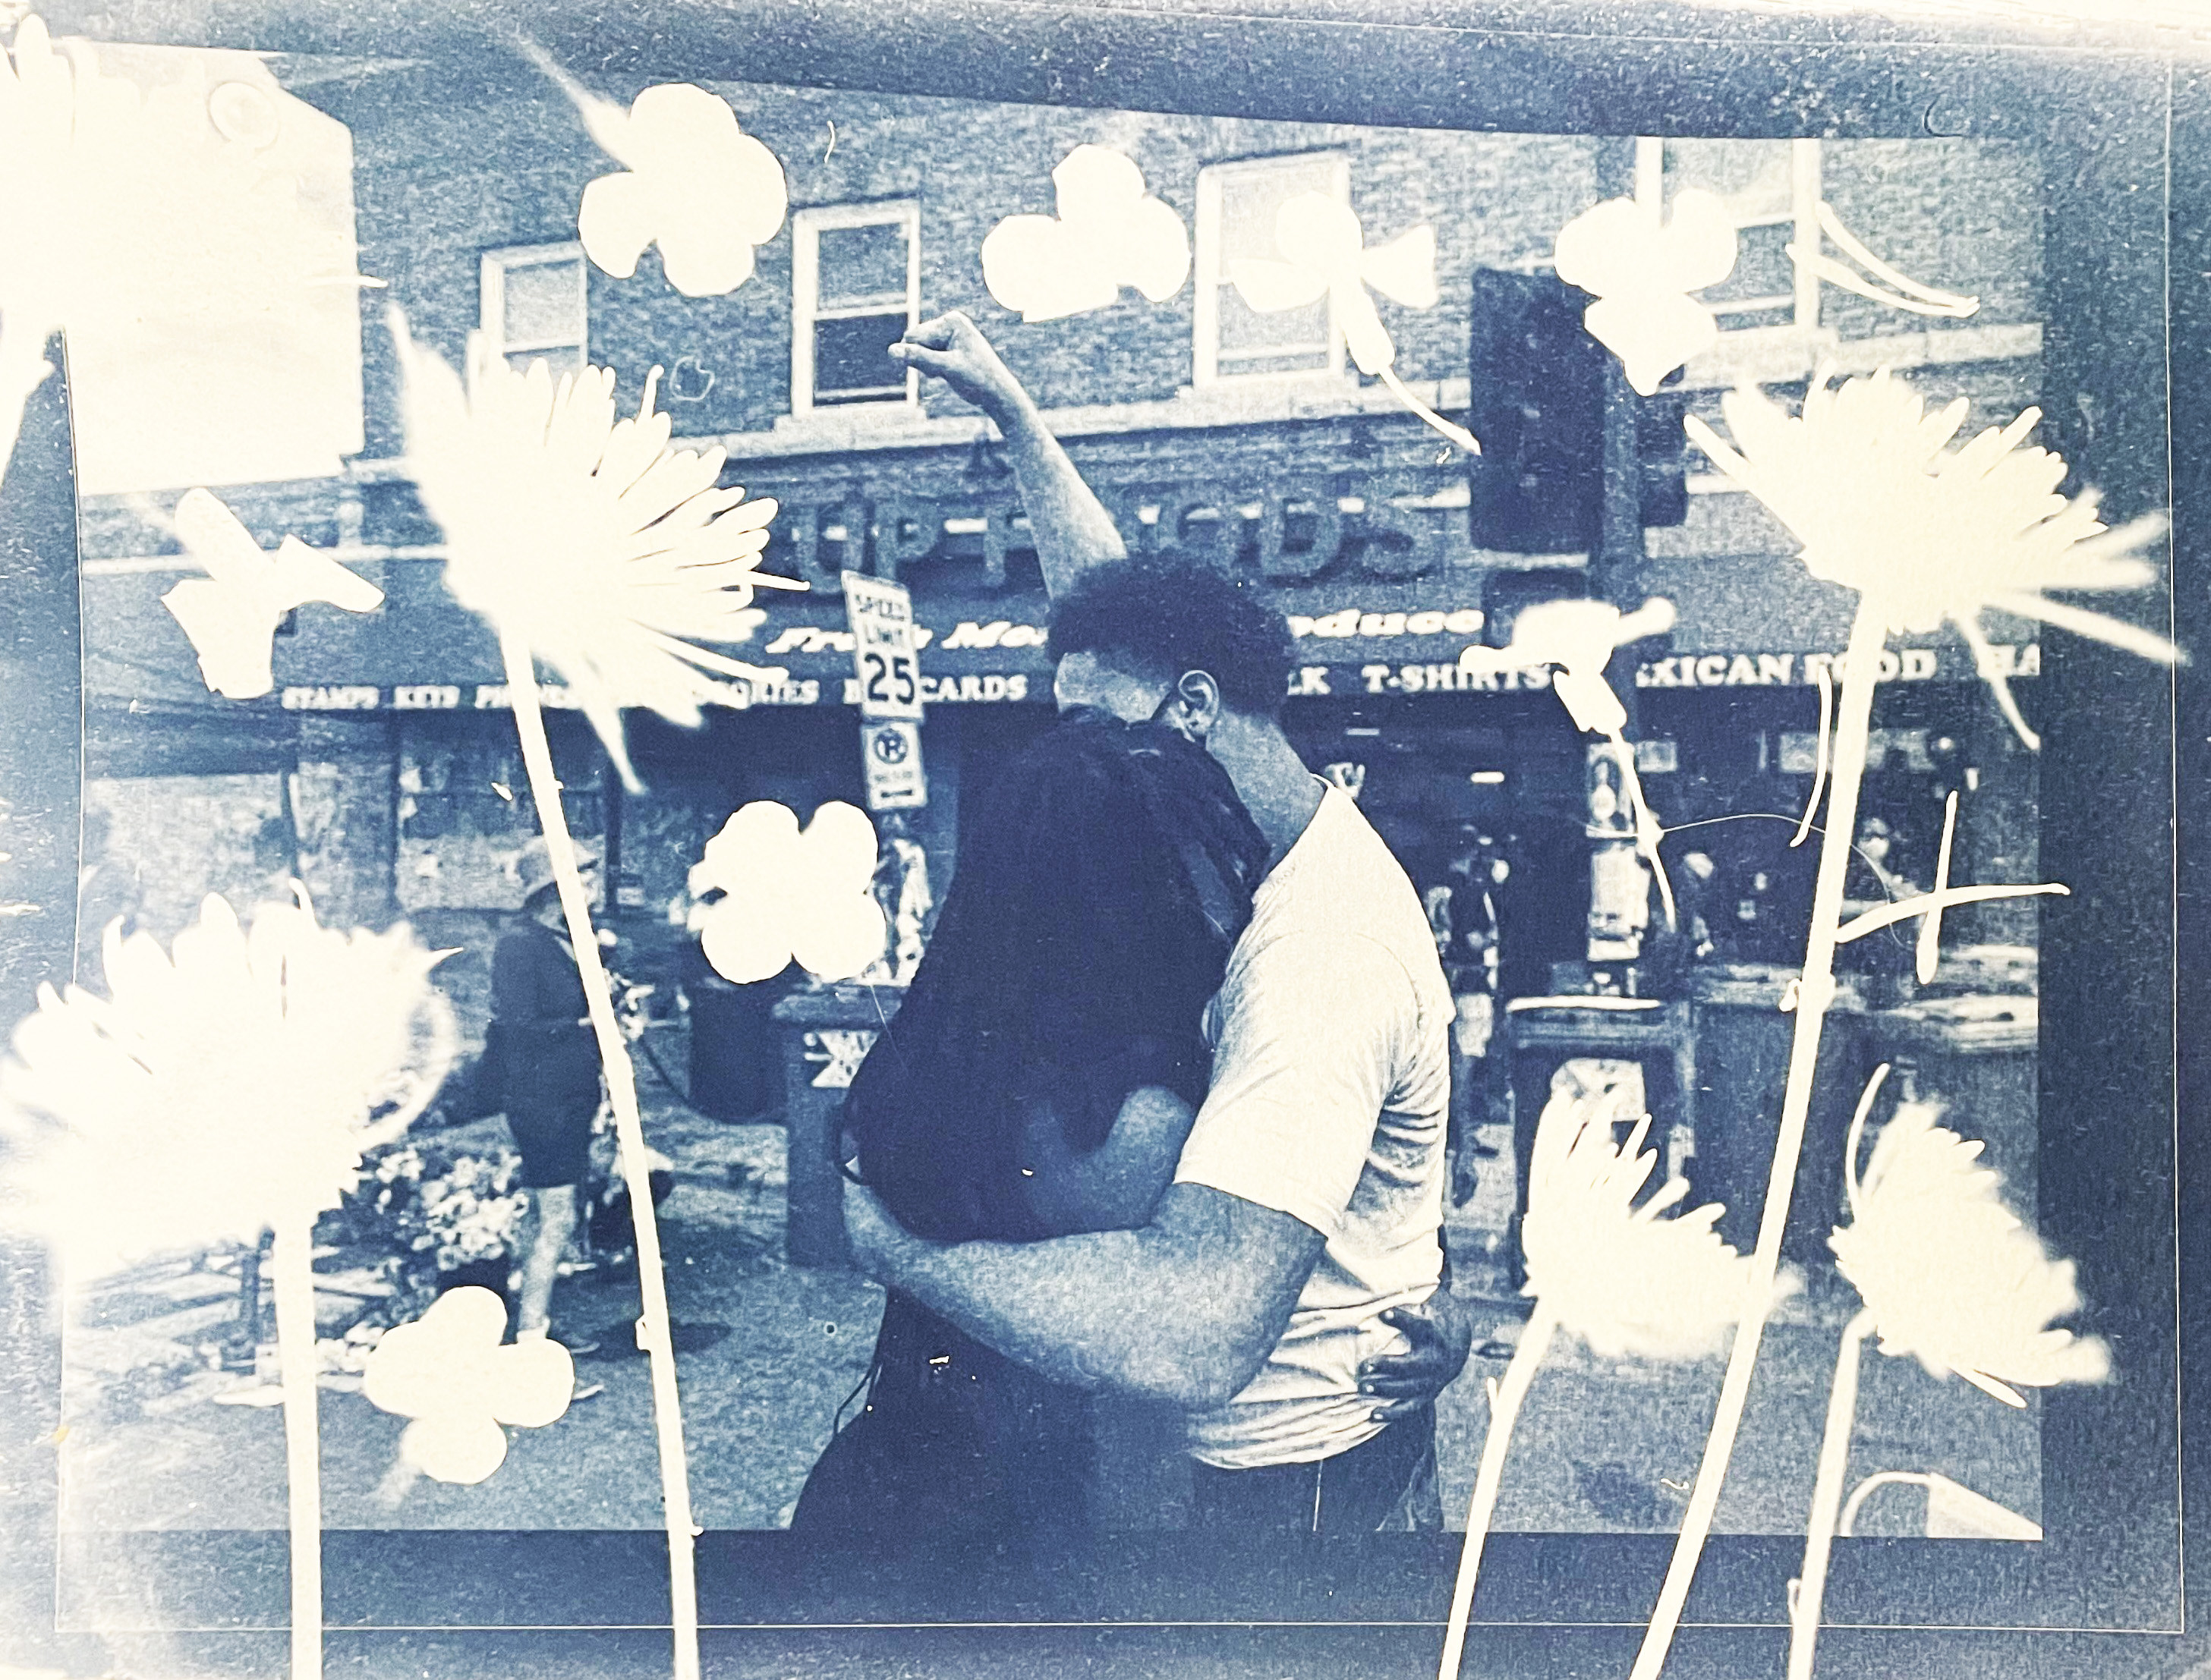 Two people embrace and the man has his fist in the air in a cyanotype overlaid with flowers